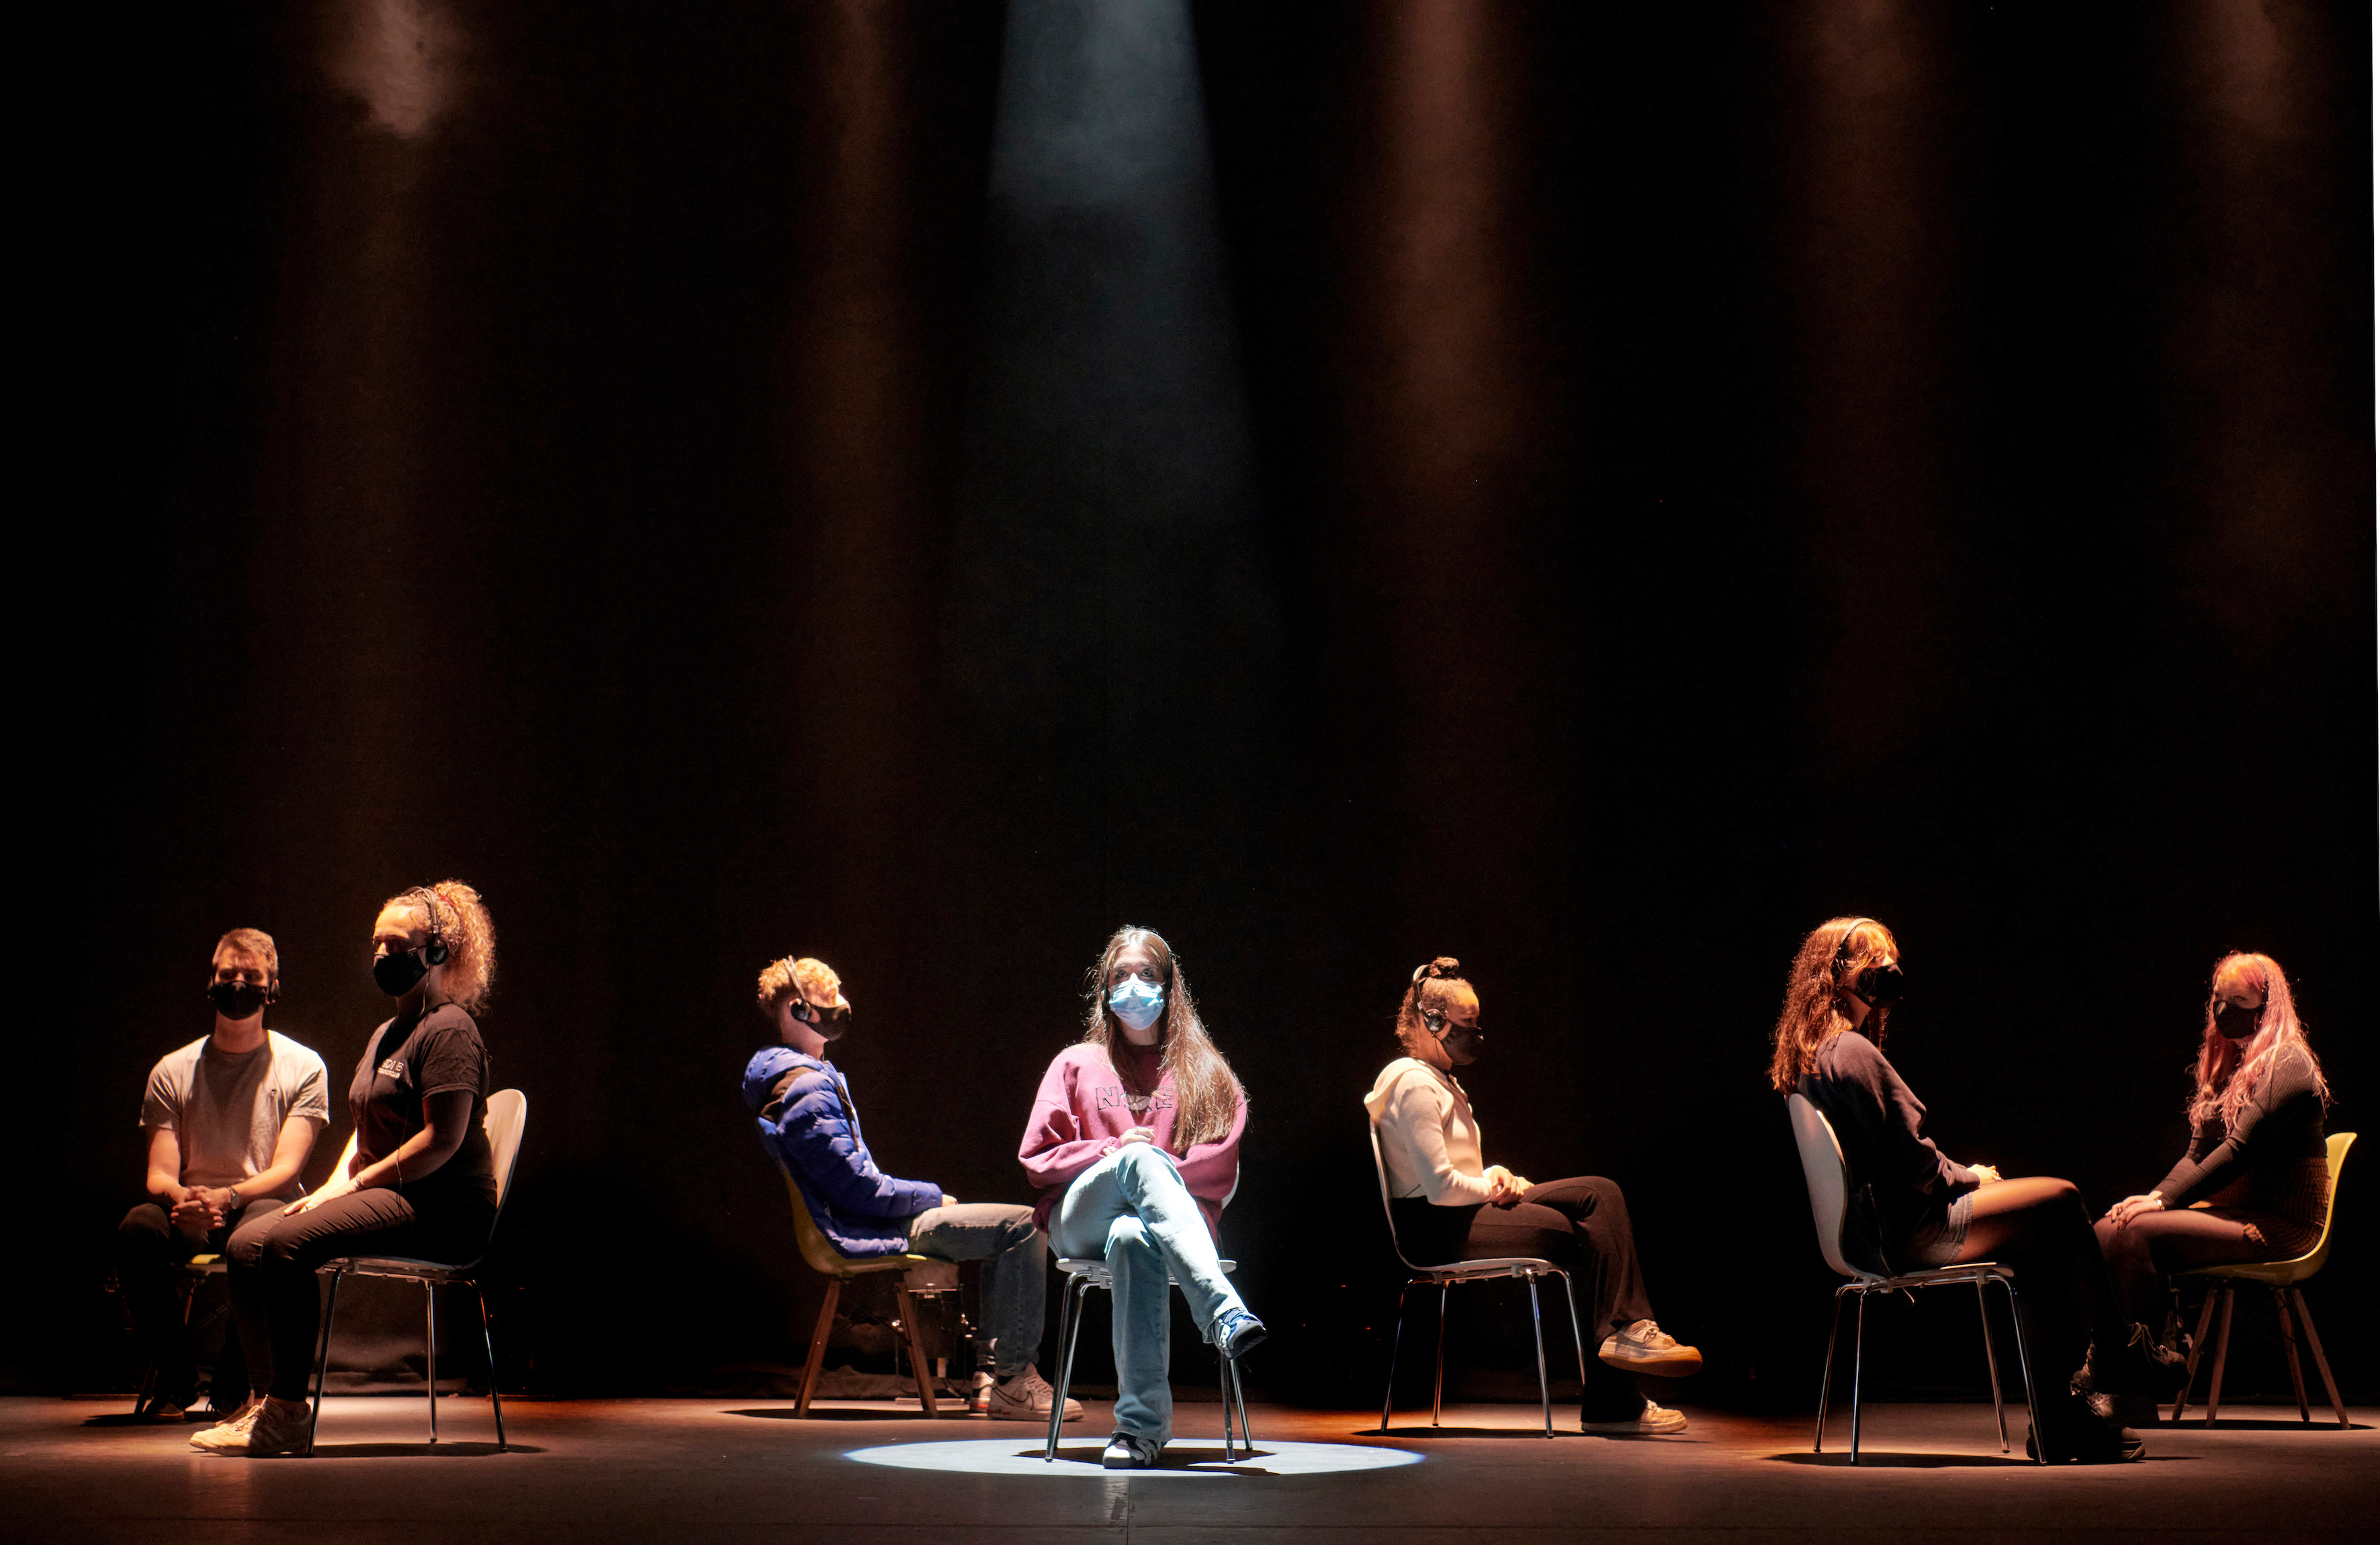 Under the Mask at Oxford Playhouse. Lighting design: Ashley Bale. Photo: Geraint Lewis.